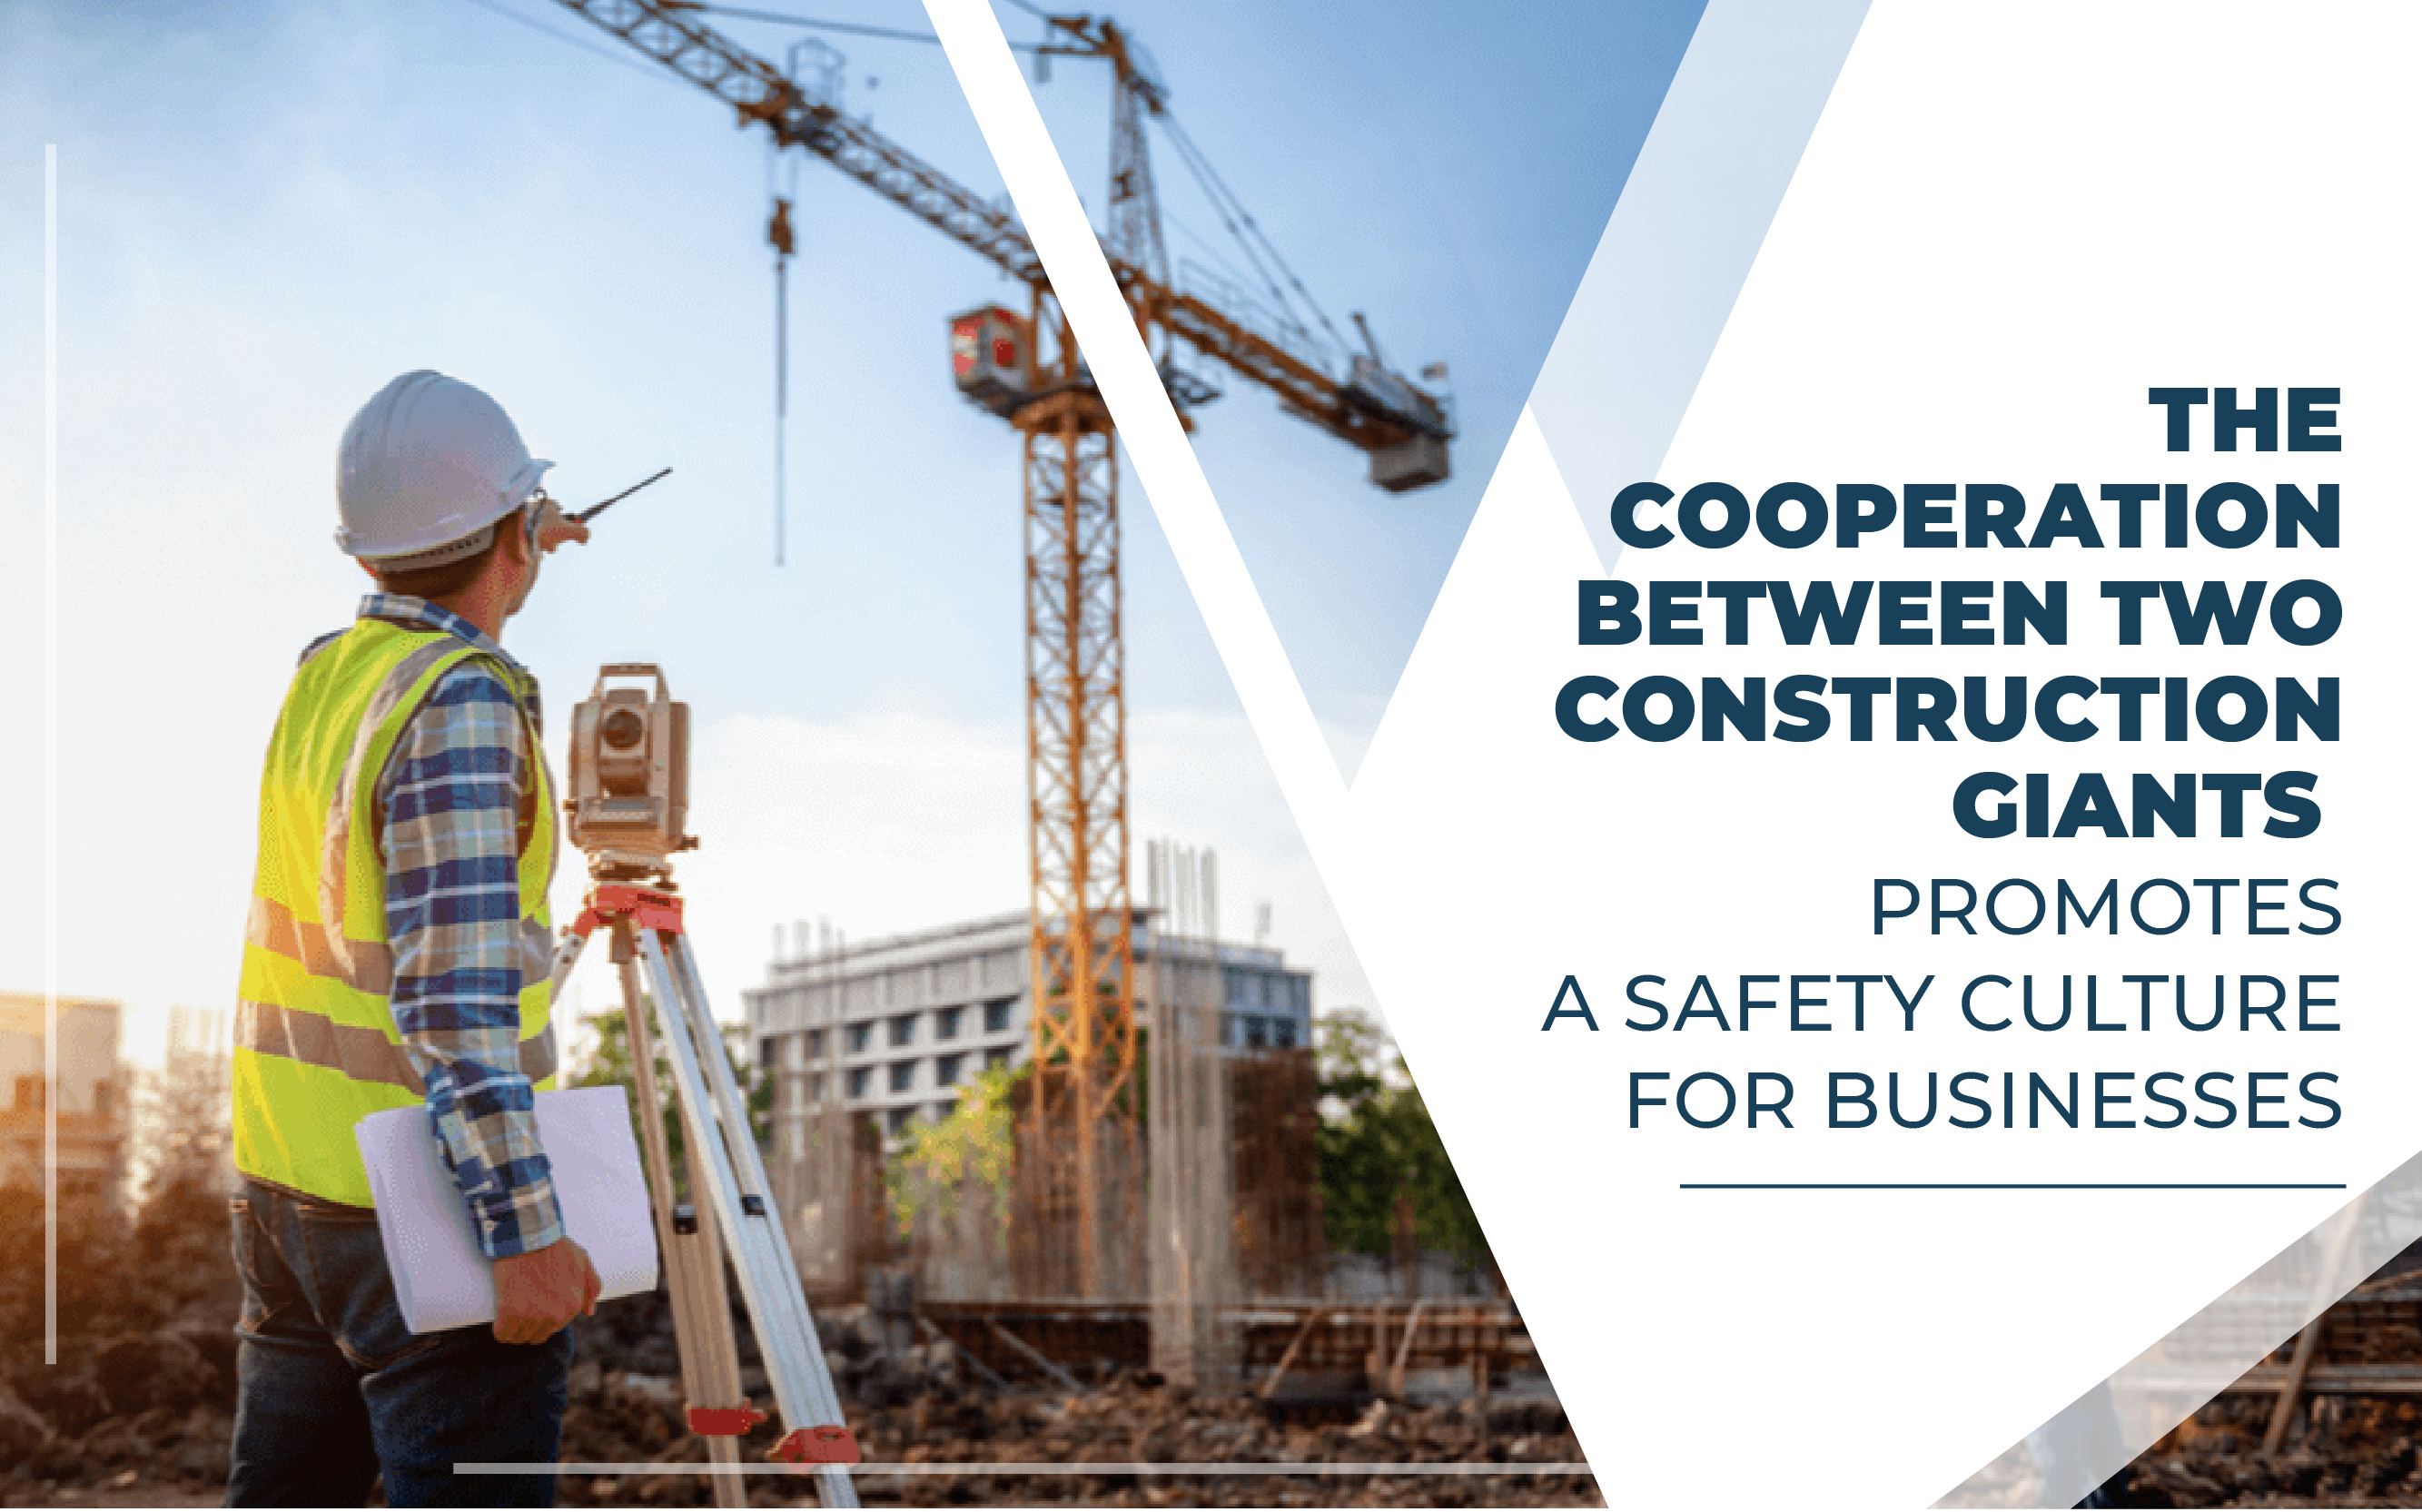 THE COOPERATION BETWEEN TWO CONSTRUCTION GIANTS TO PROMOTE A SAFETY CULTURE FOR BUSINESSES